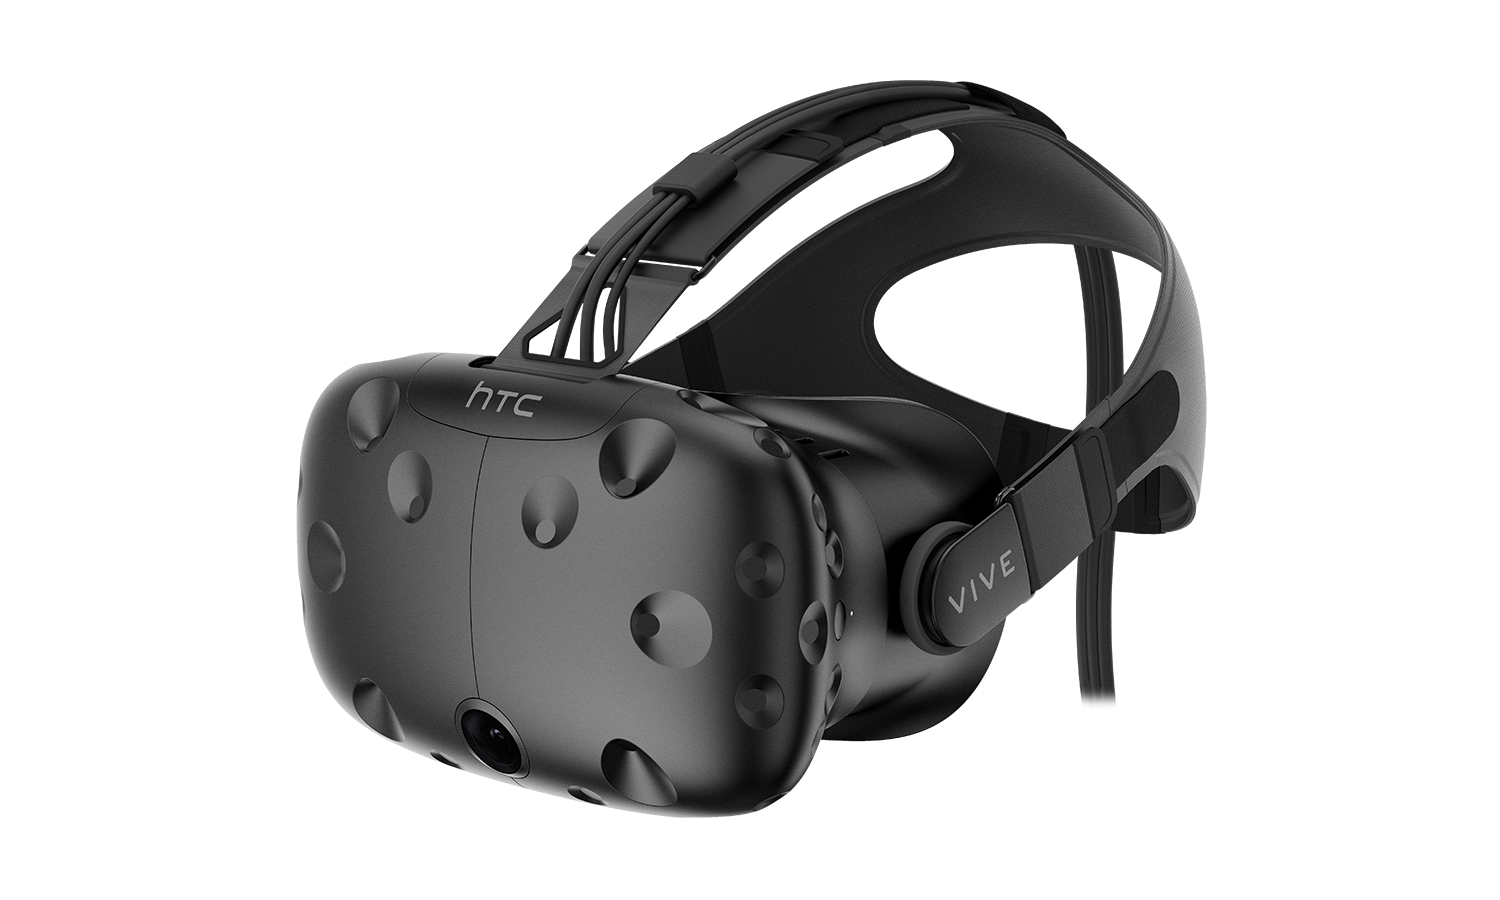 Top 5 Virtual Reality Headset from Facebook,Sony,Samsung,HTC,Google to buy in 2017